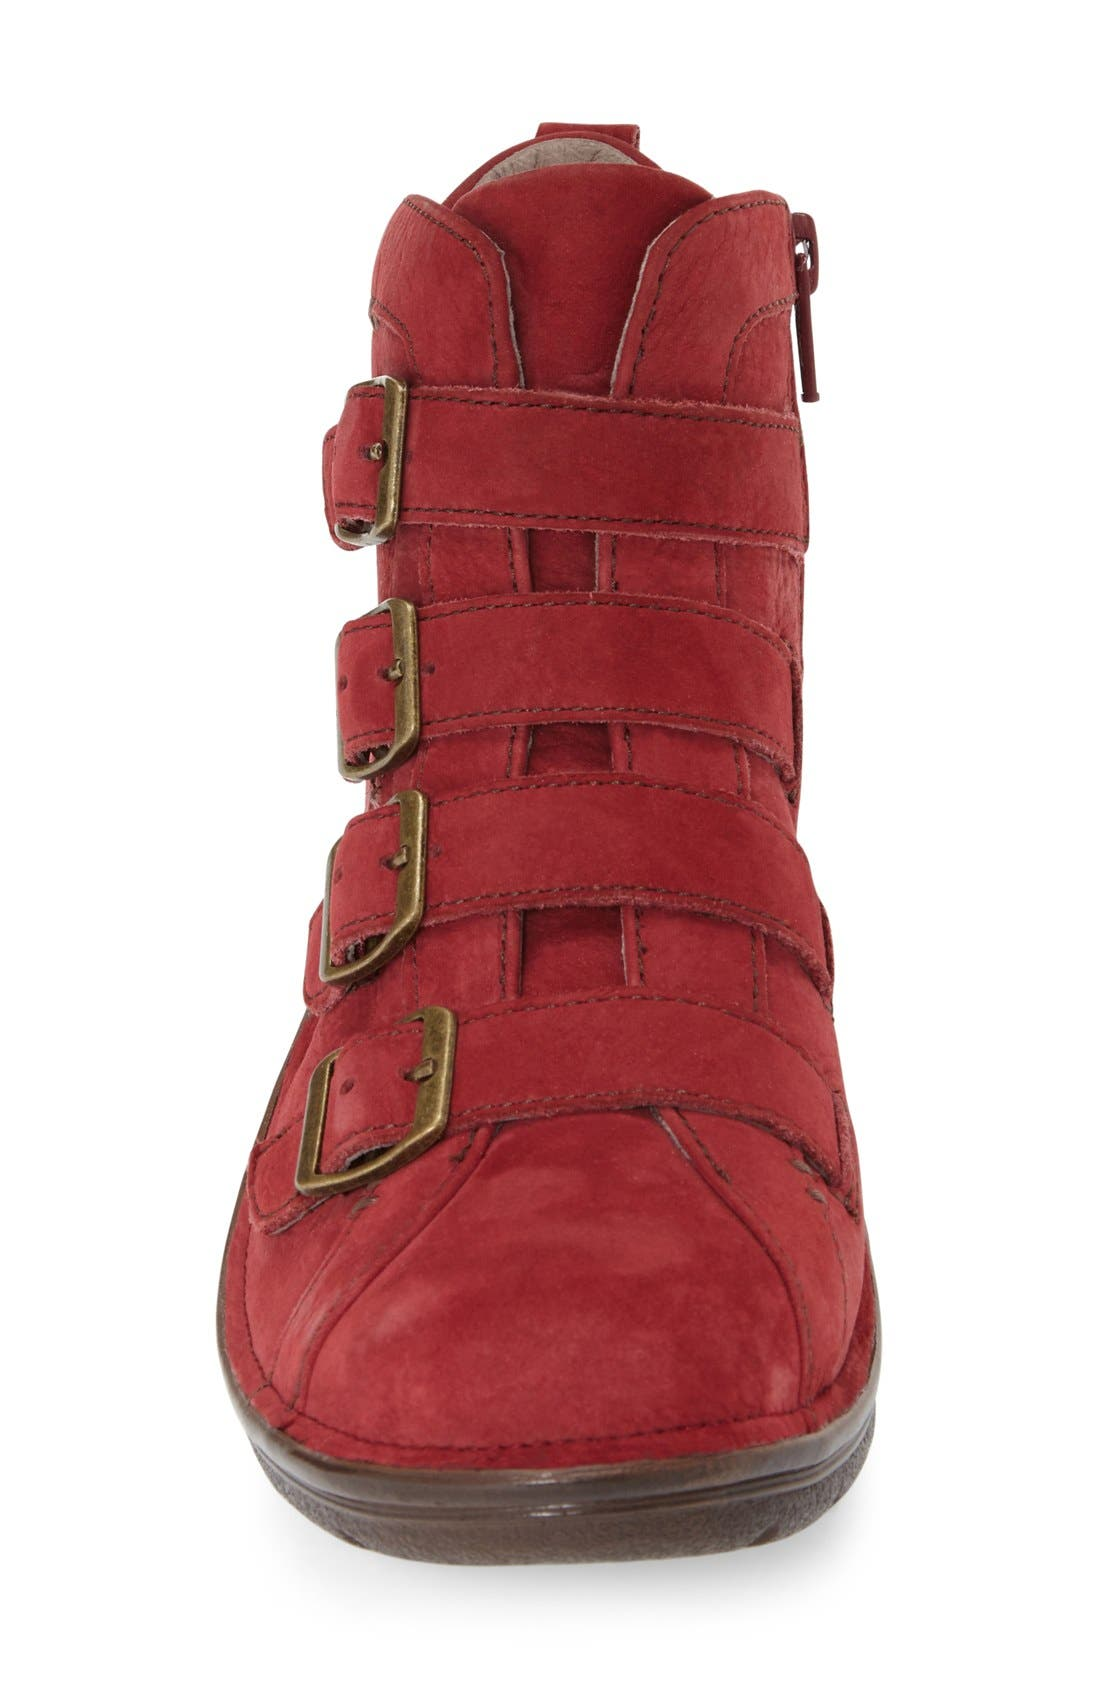 'Orion' Bootie,                             Alternate thumbnail 3, color,                             Red Leather